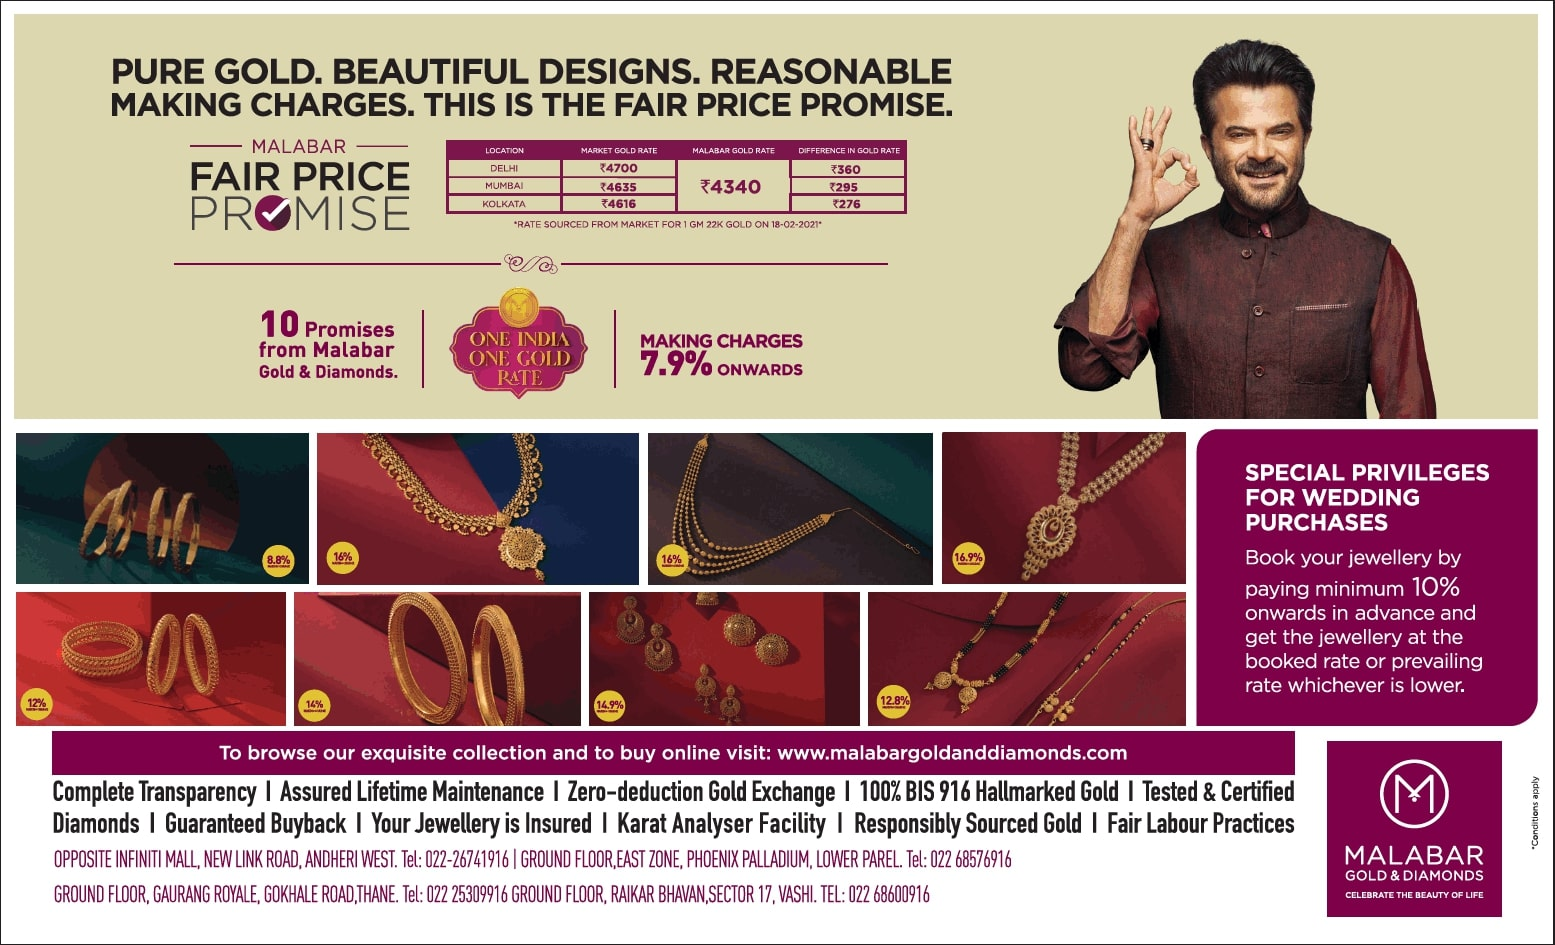 malabar-gold-and-diamonds-pure-gold-by-anil-kapoor-ad-times-of-india-mumbai-19-02-2021